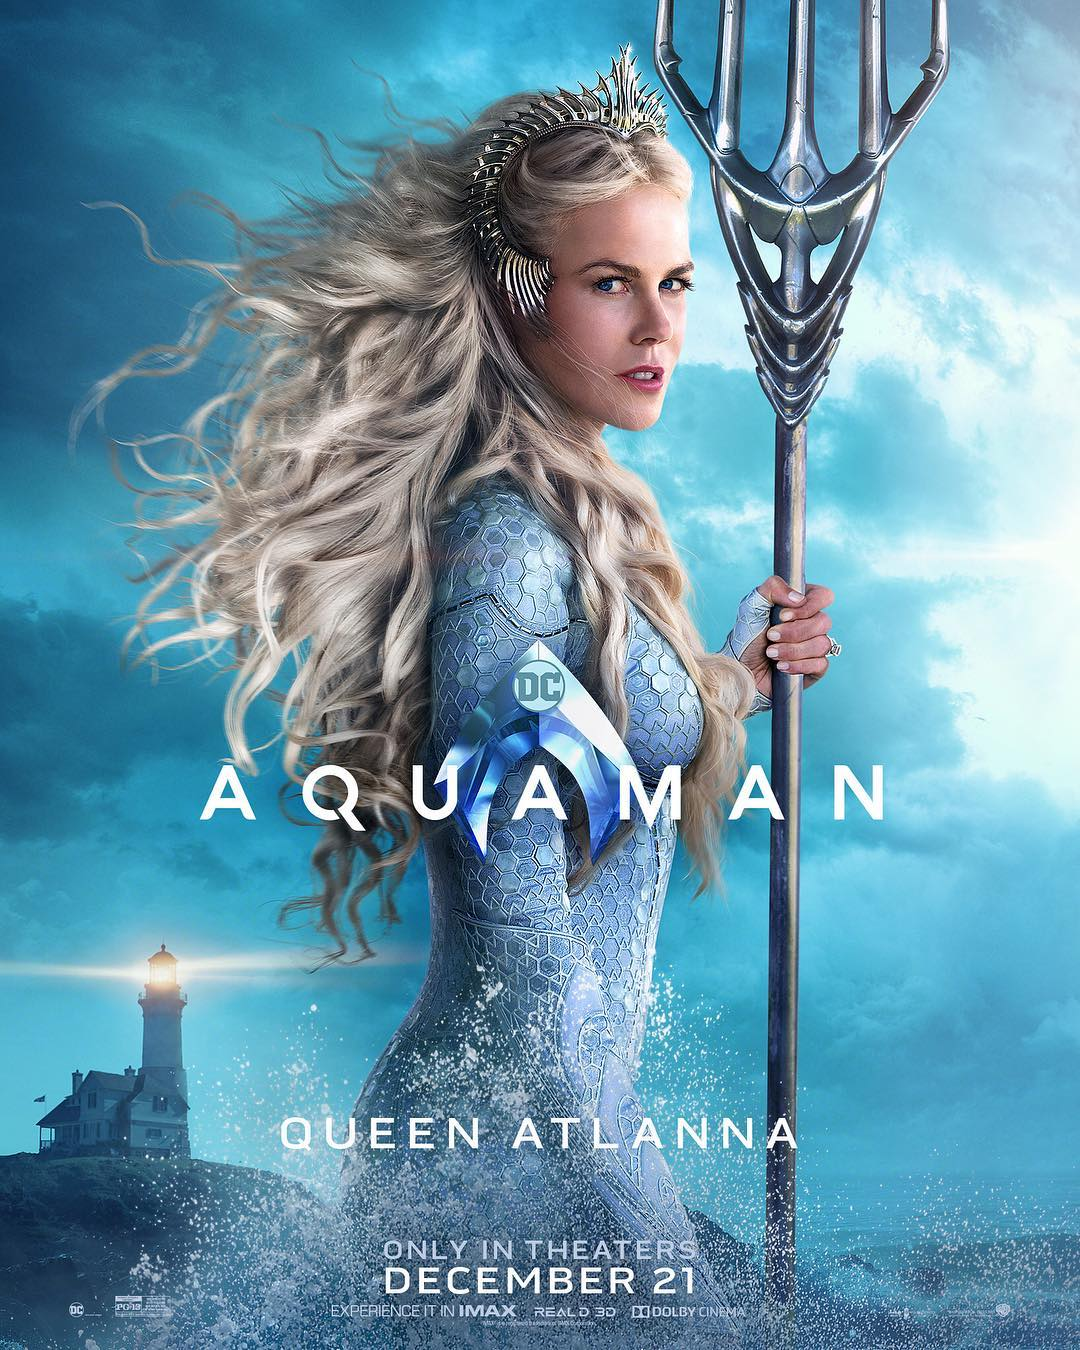 Nicole Kidman is Queen Atlanna on a new Aquaman character poster.